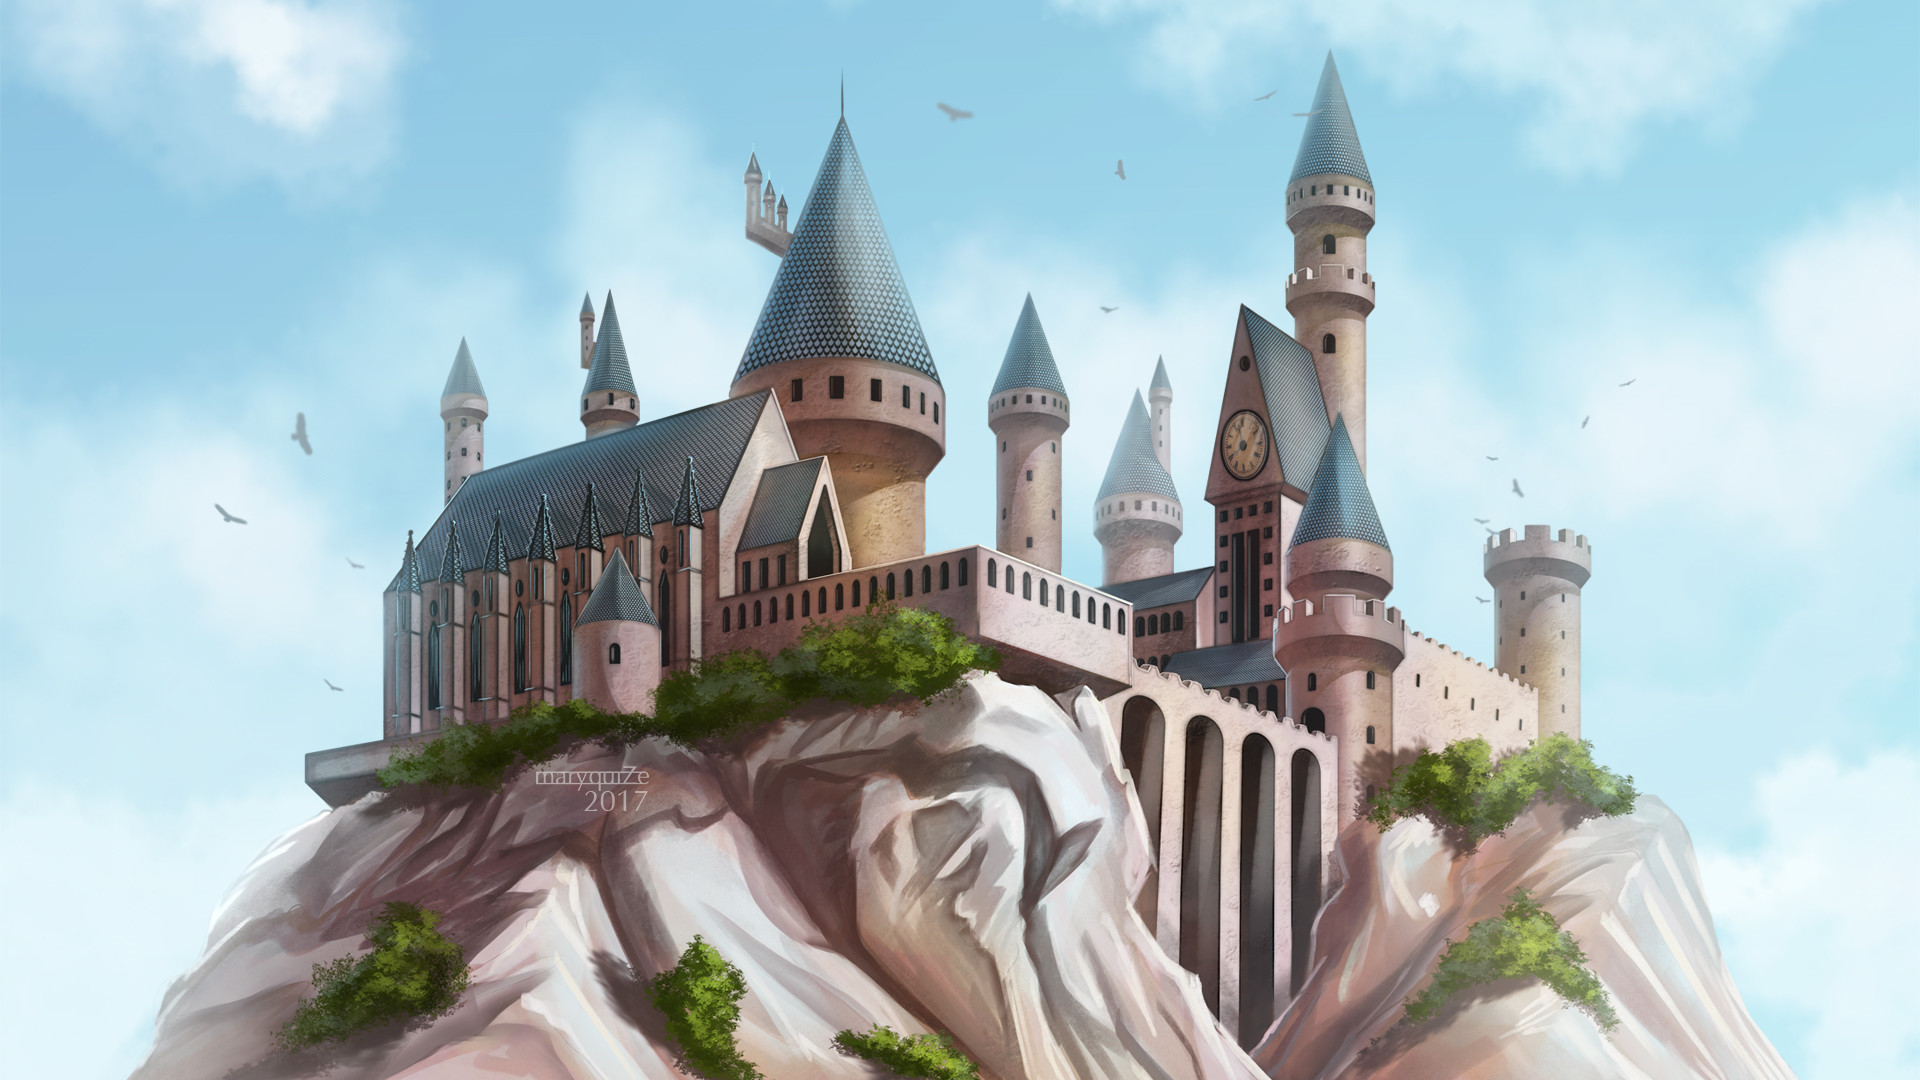 Hogwarts wallpaper by maryquiZe Hogwarts wallpaper by maryquiZe